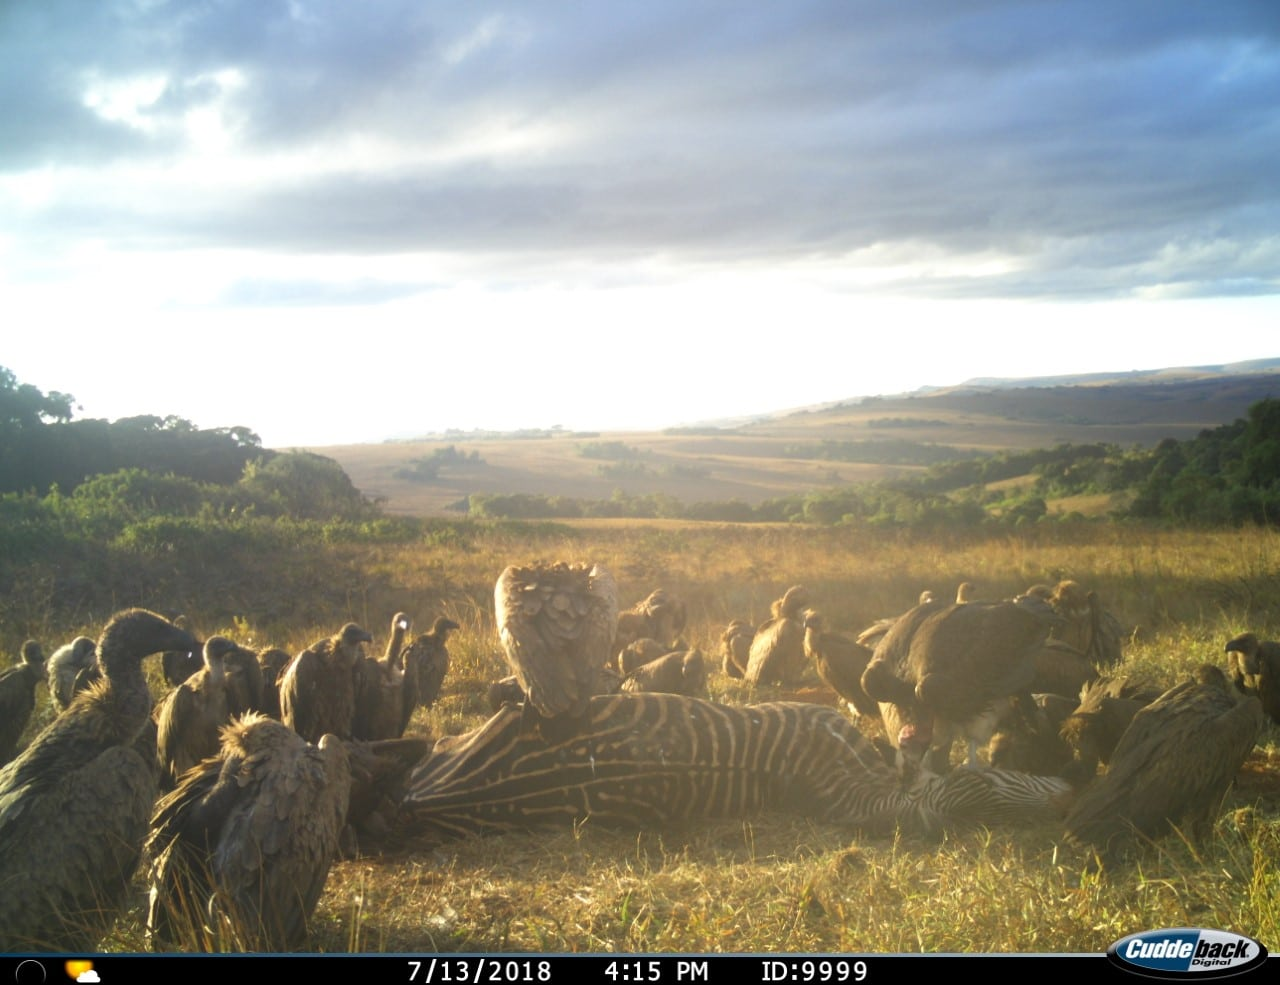 vulture research project camera trap